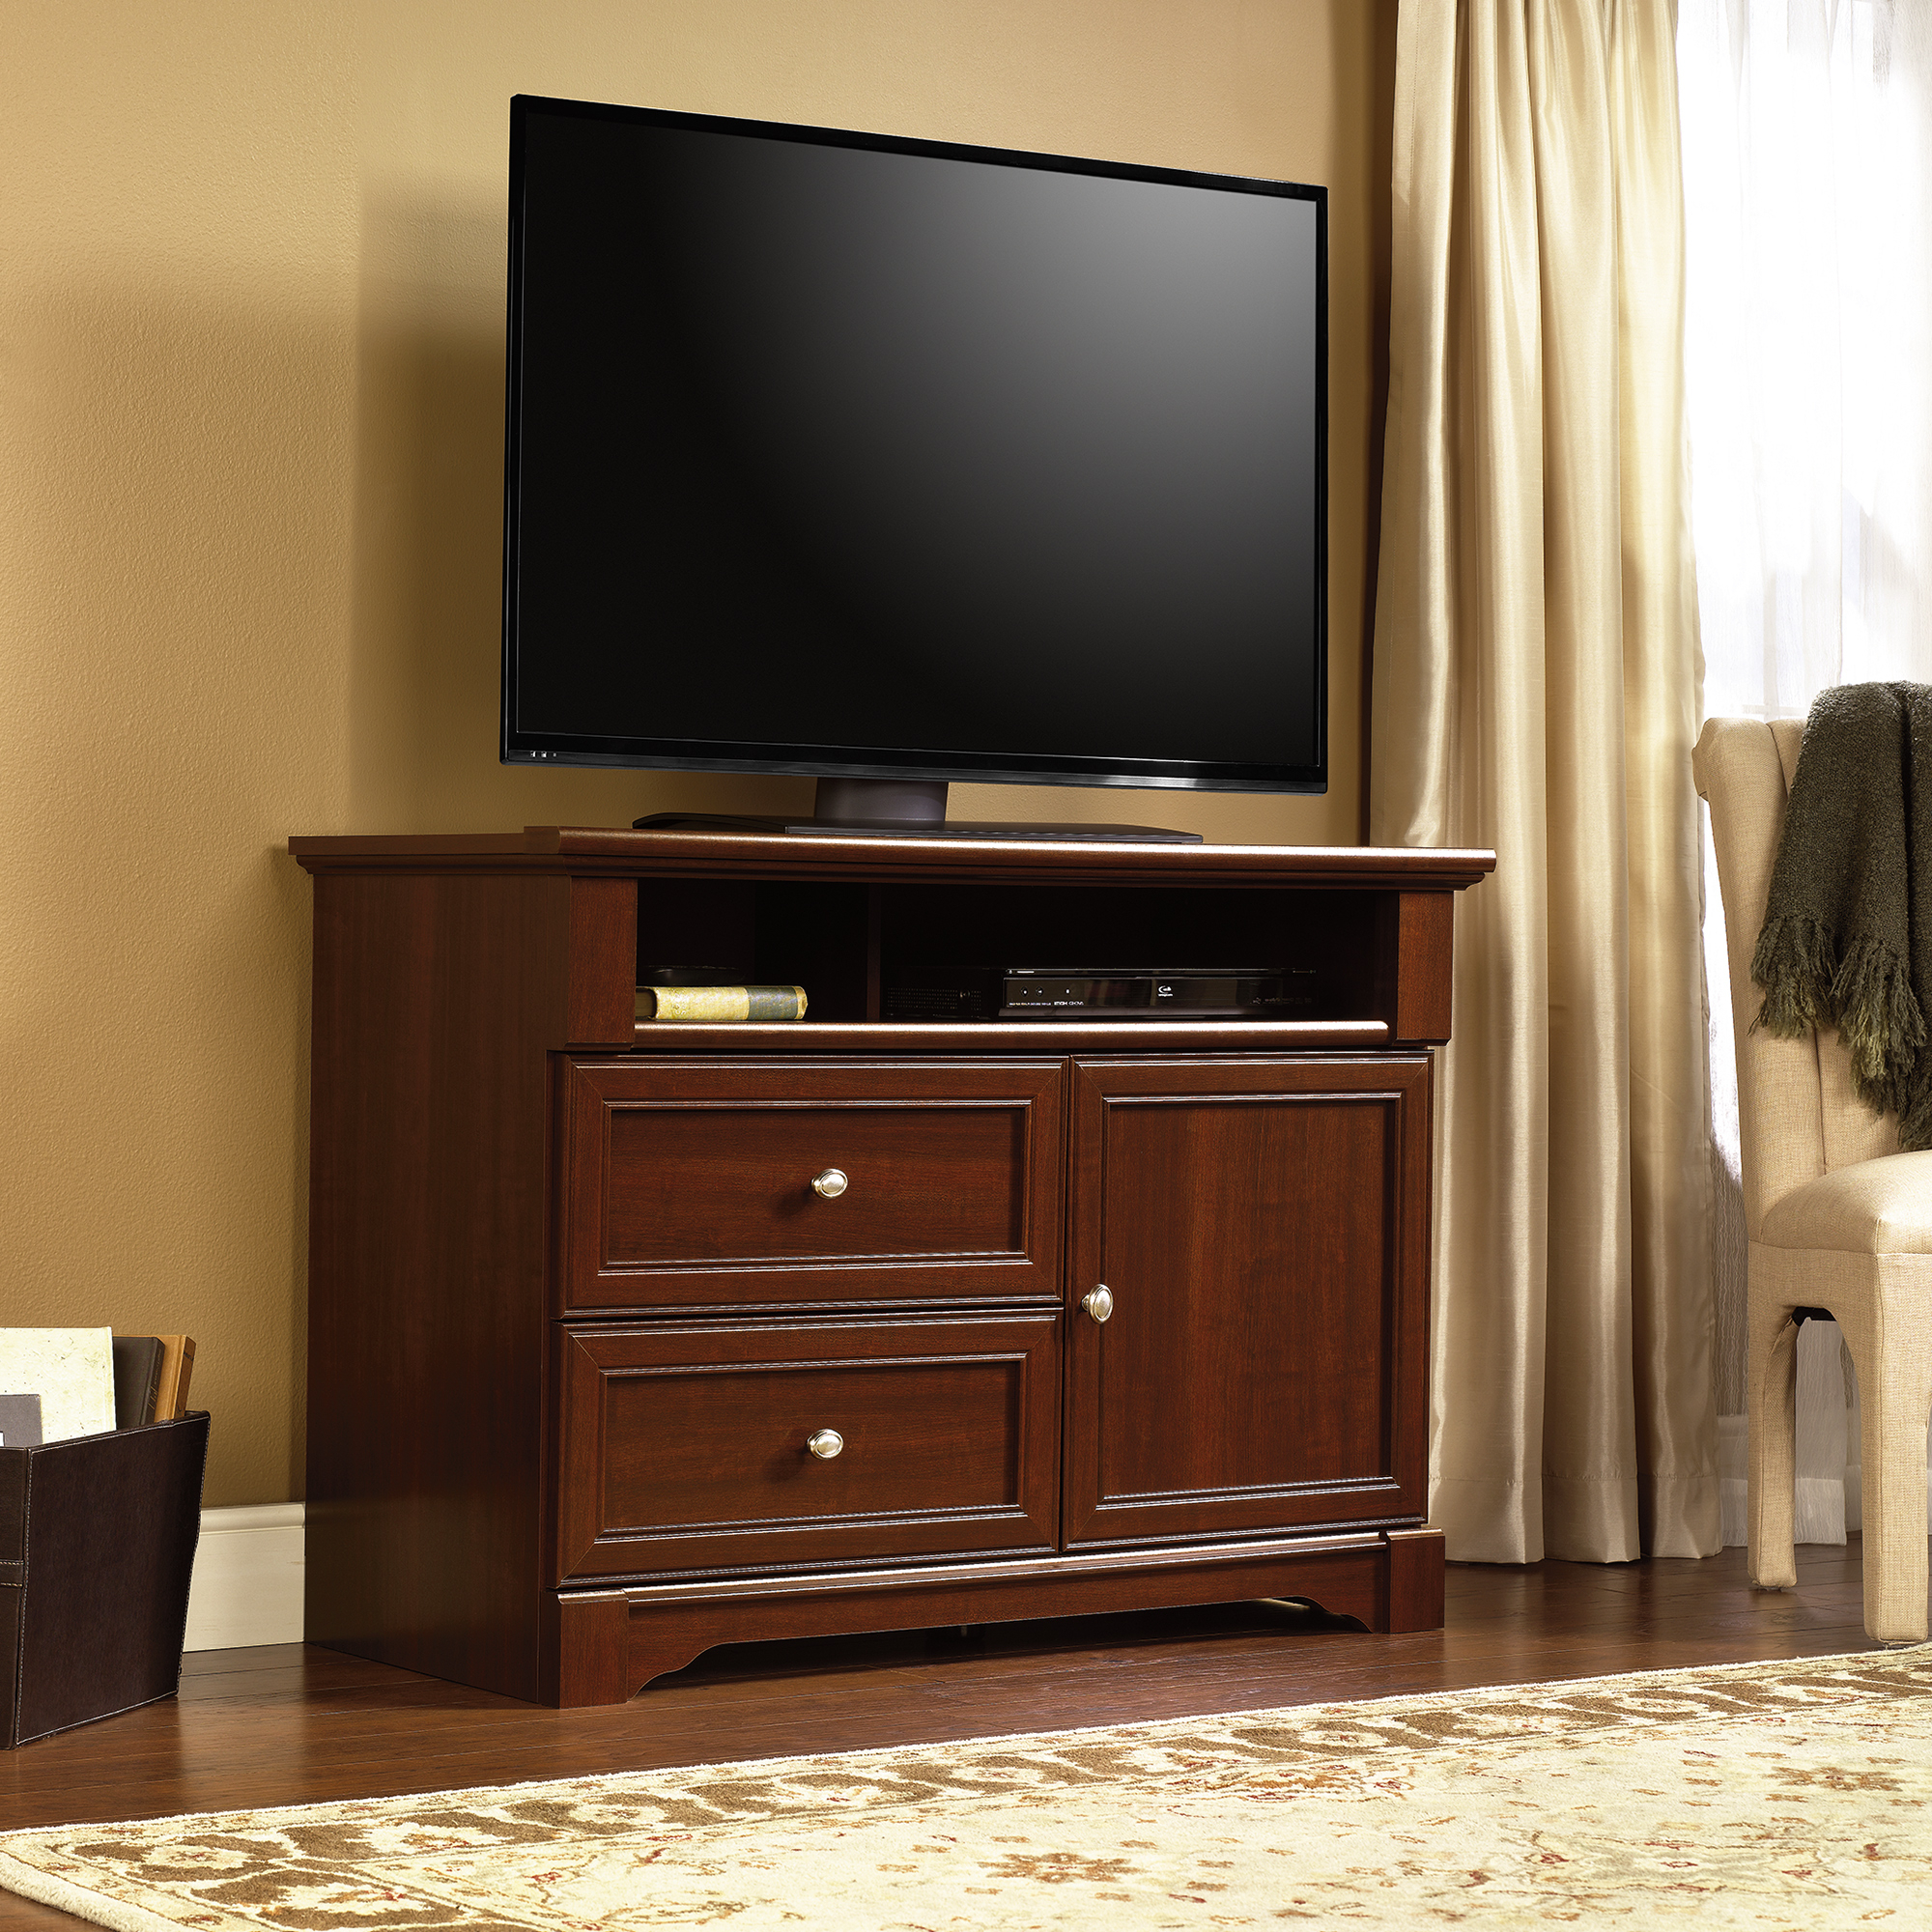 Highboy Tv Stand (View 7 of 20)